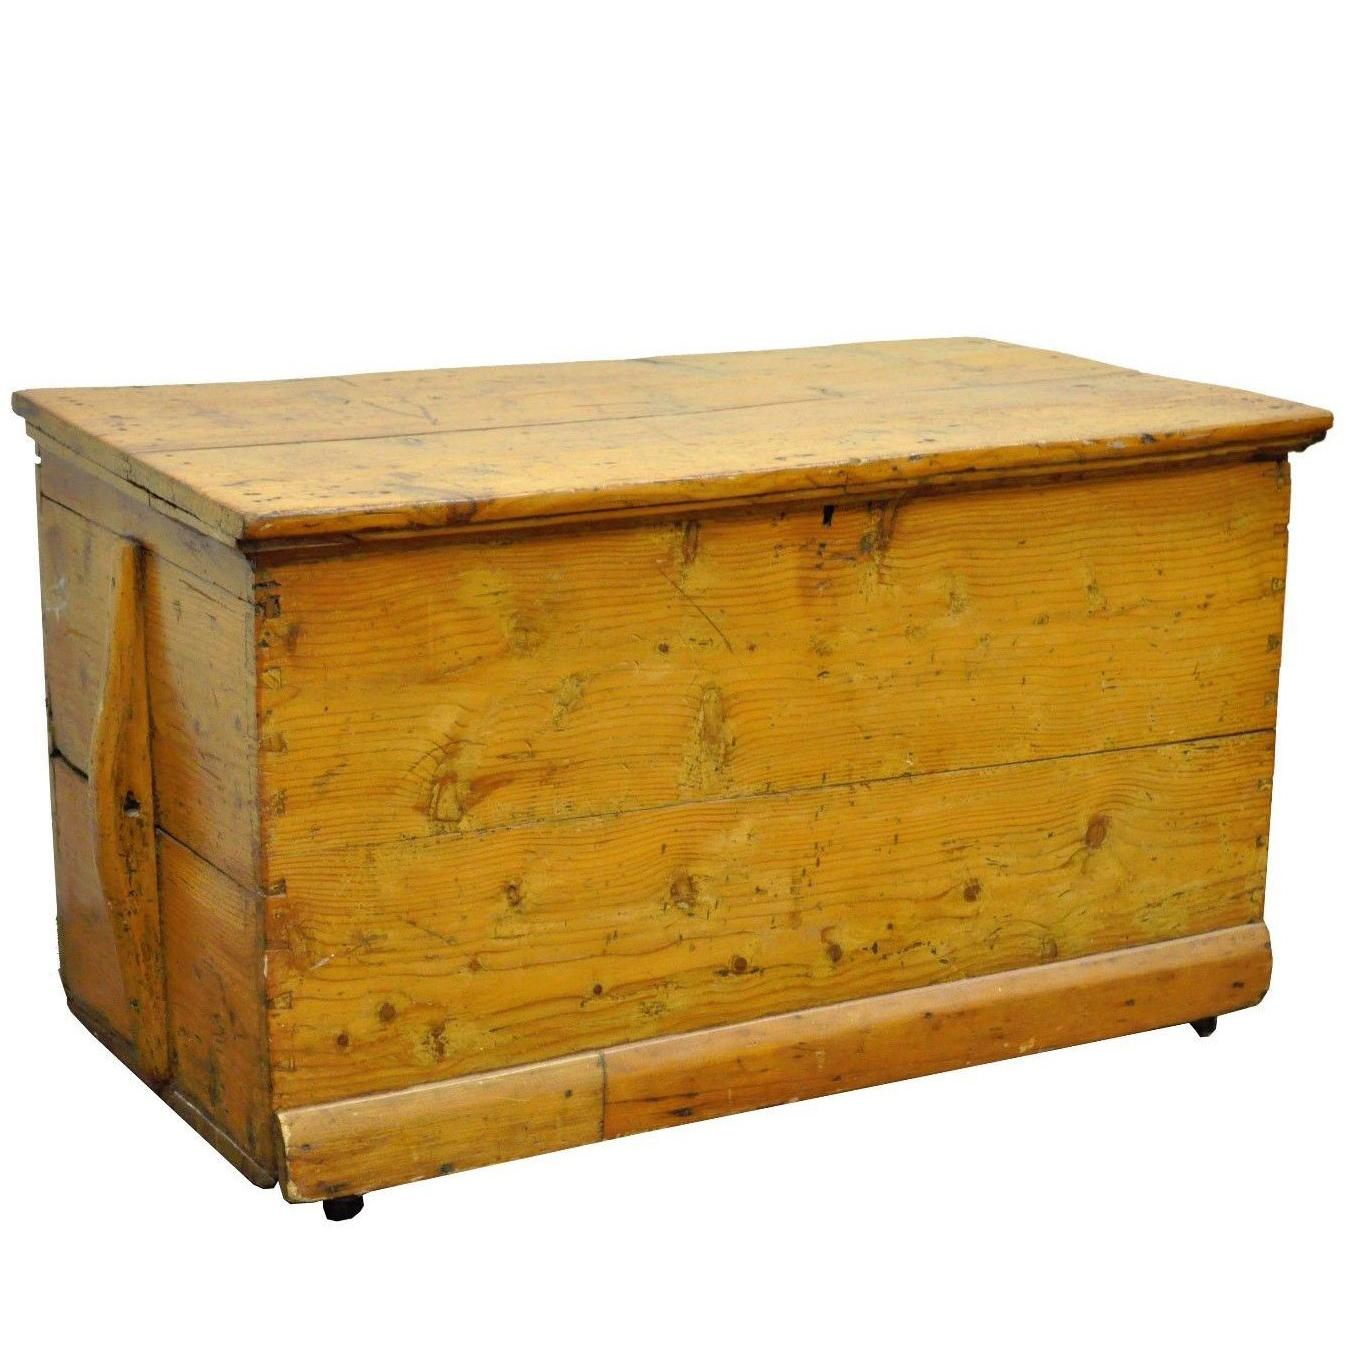 Antique Solid Pine Hand Dovetailed American Primitive Rustic Blanket Chest  Trunk For Sale